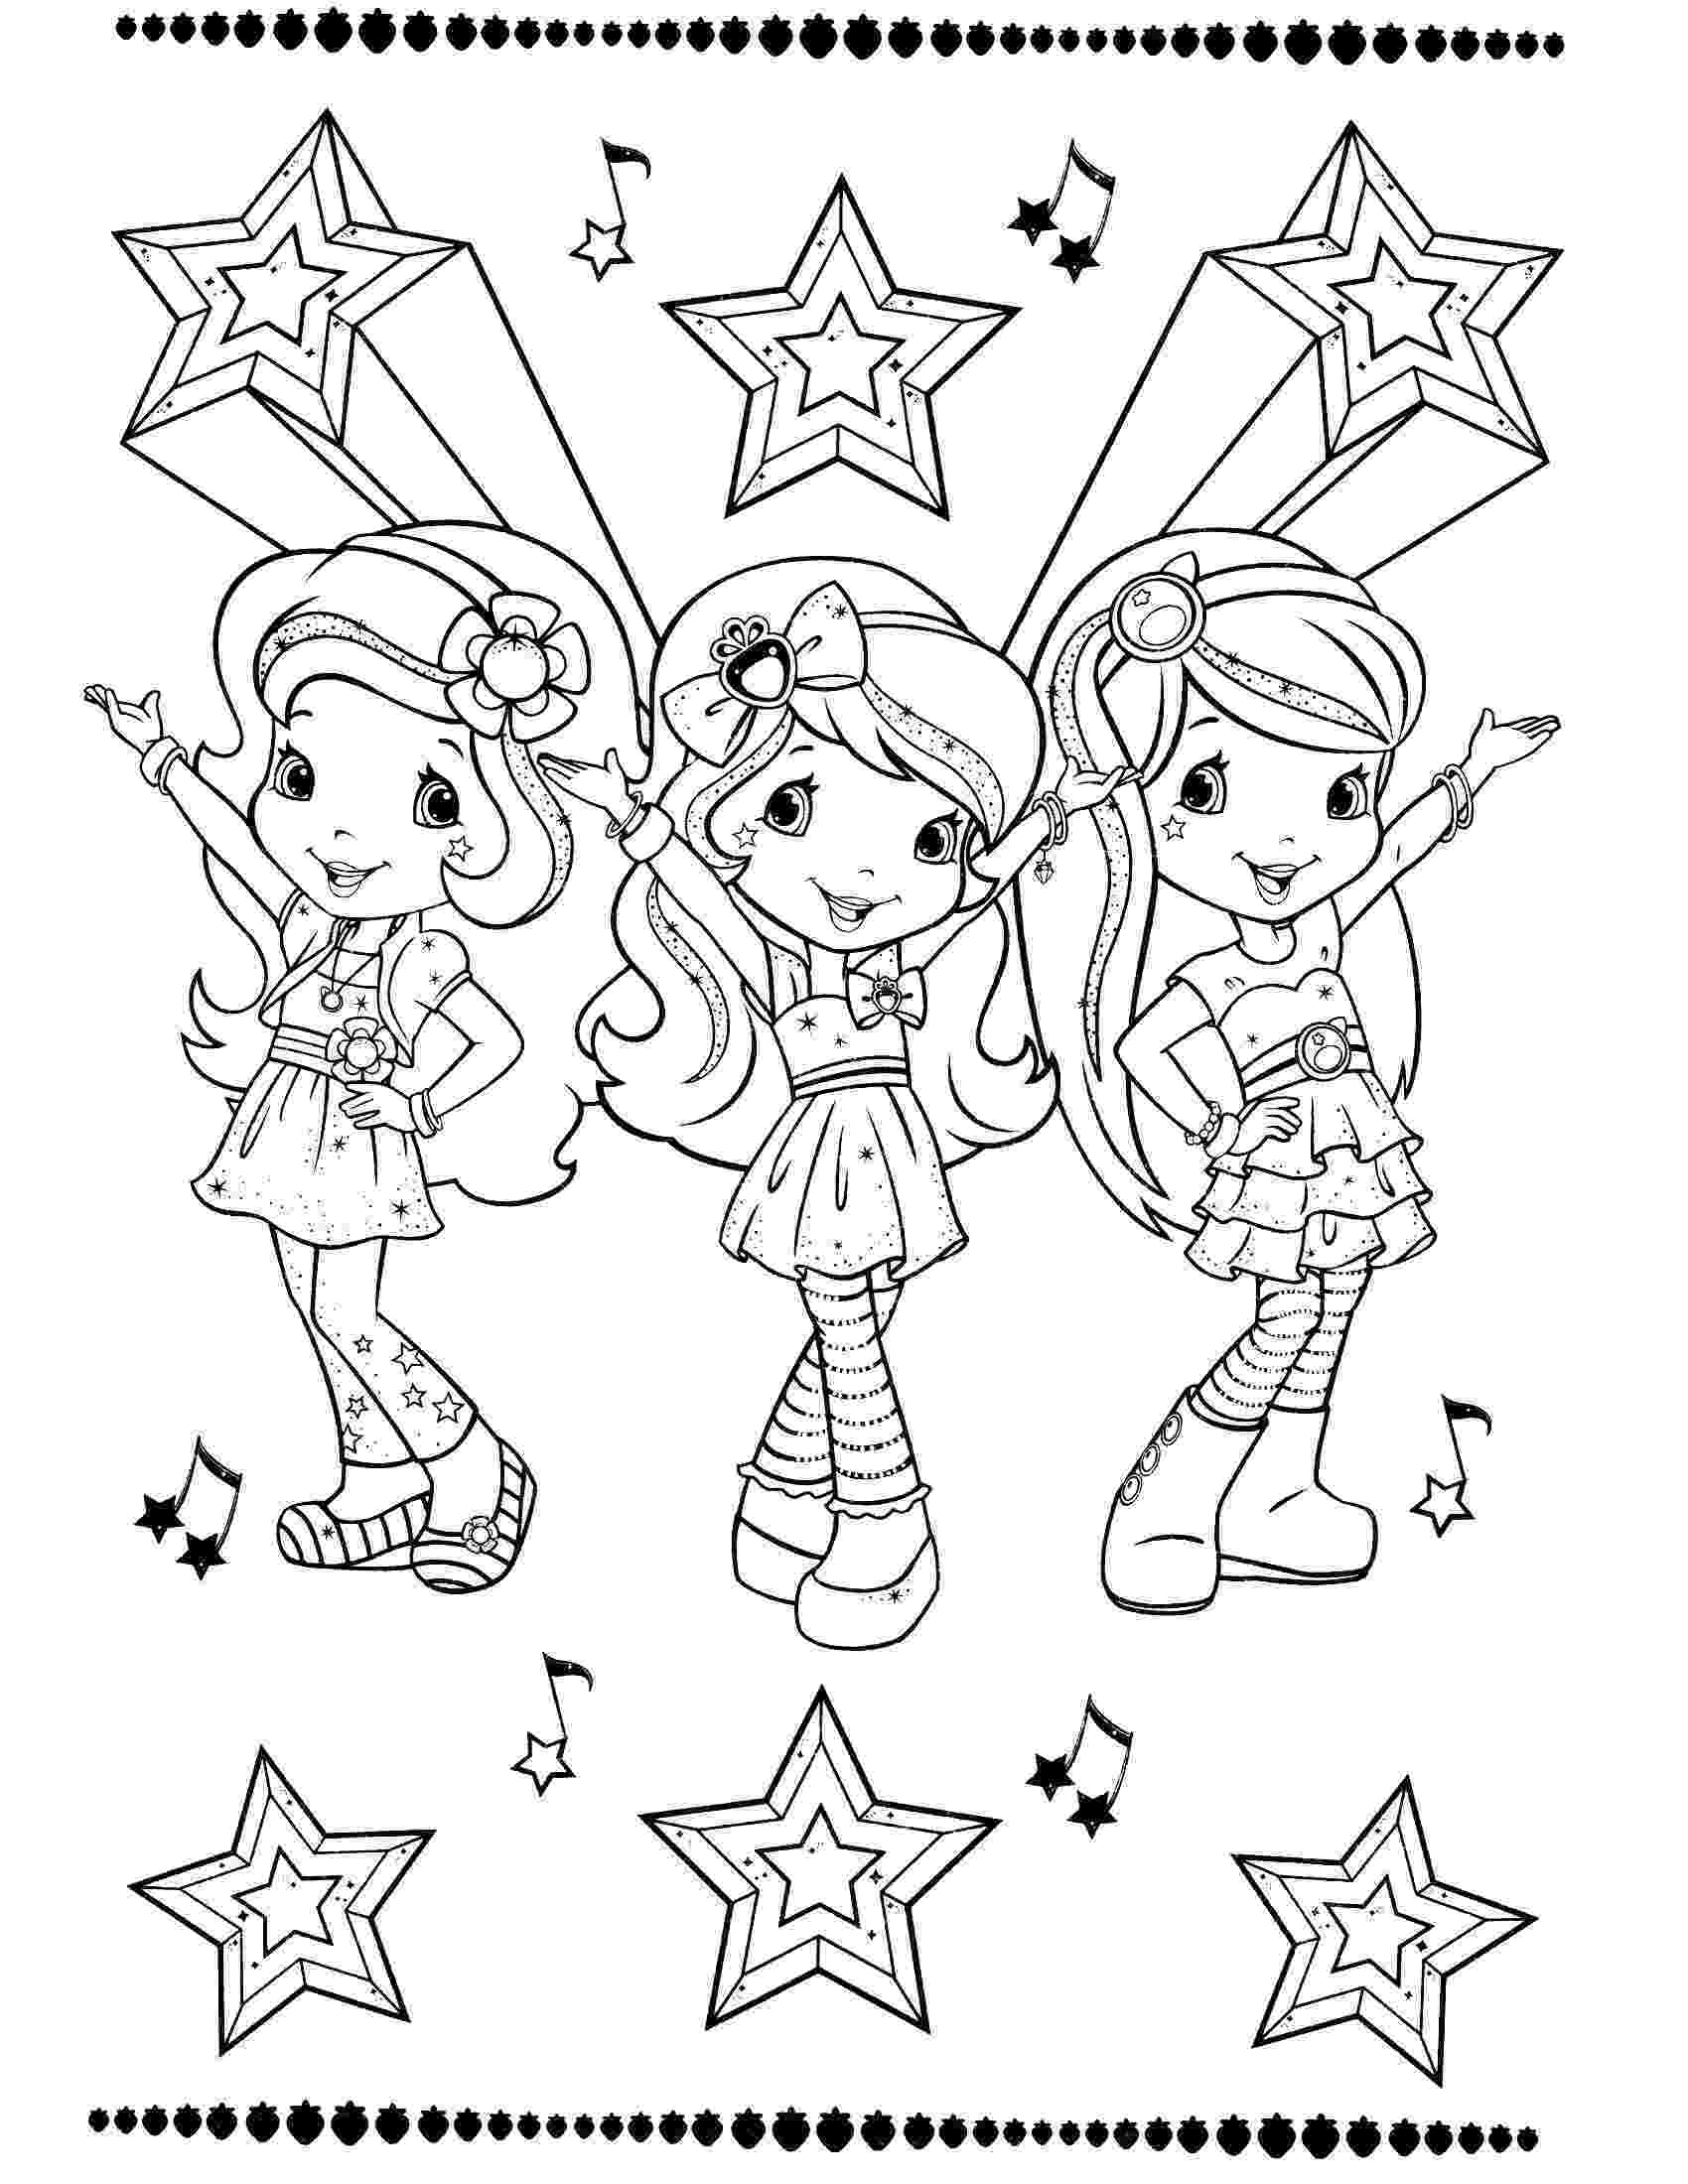 pictures of strawberry shortcake strawberry shortcake coloring page art coloring pages of pictures strawberry shortcake